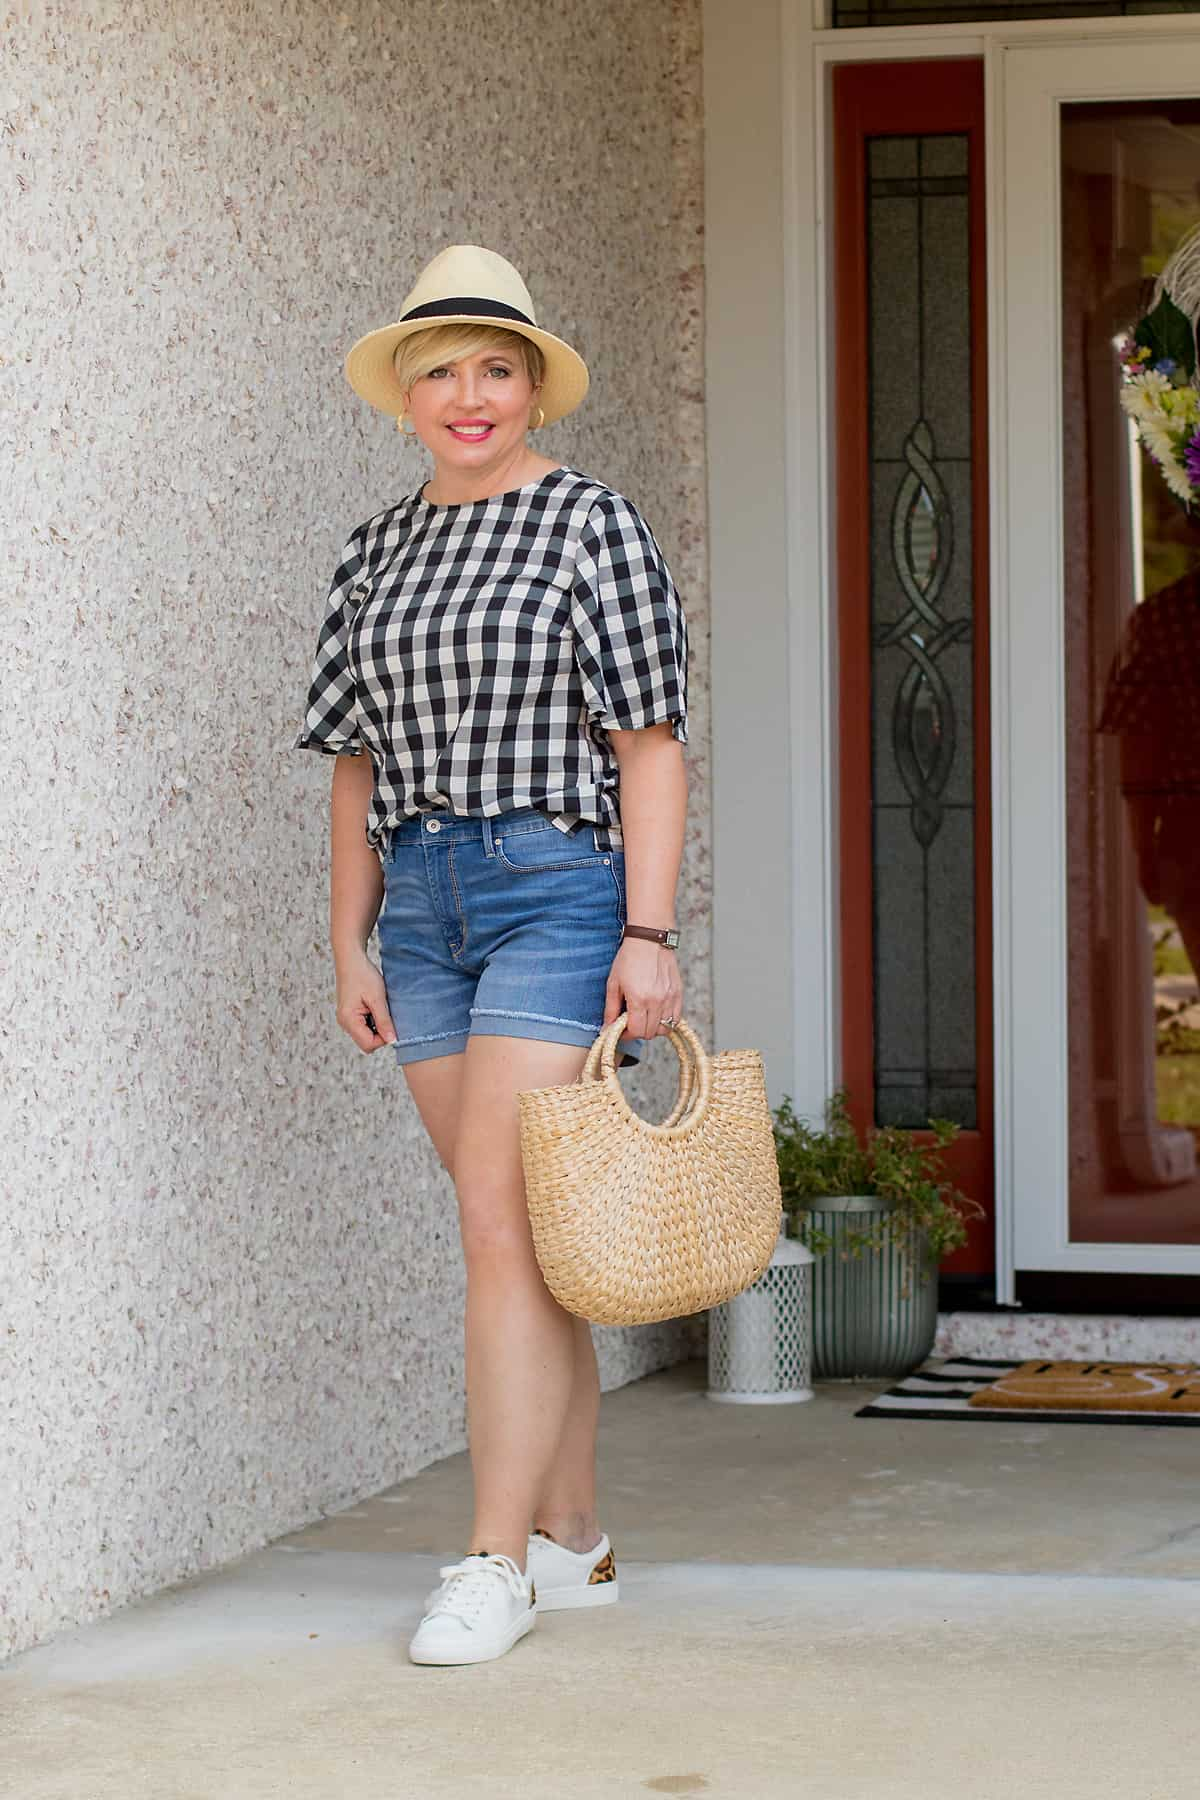 gingham top outfit